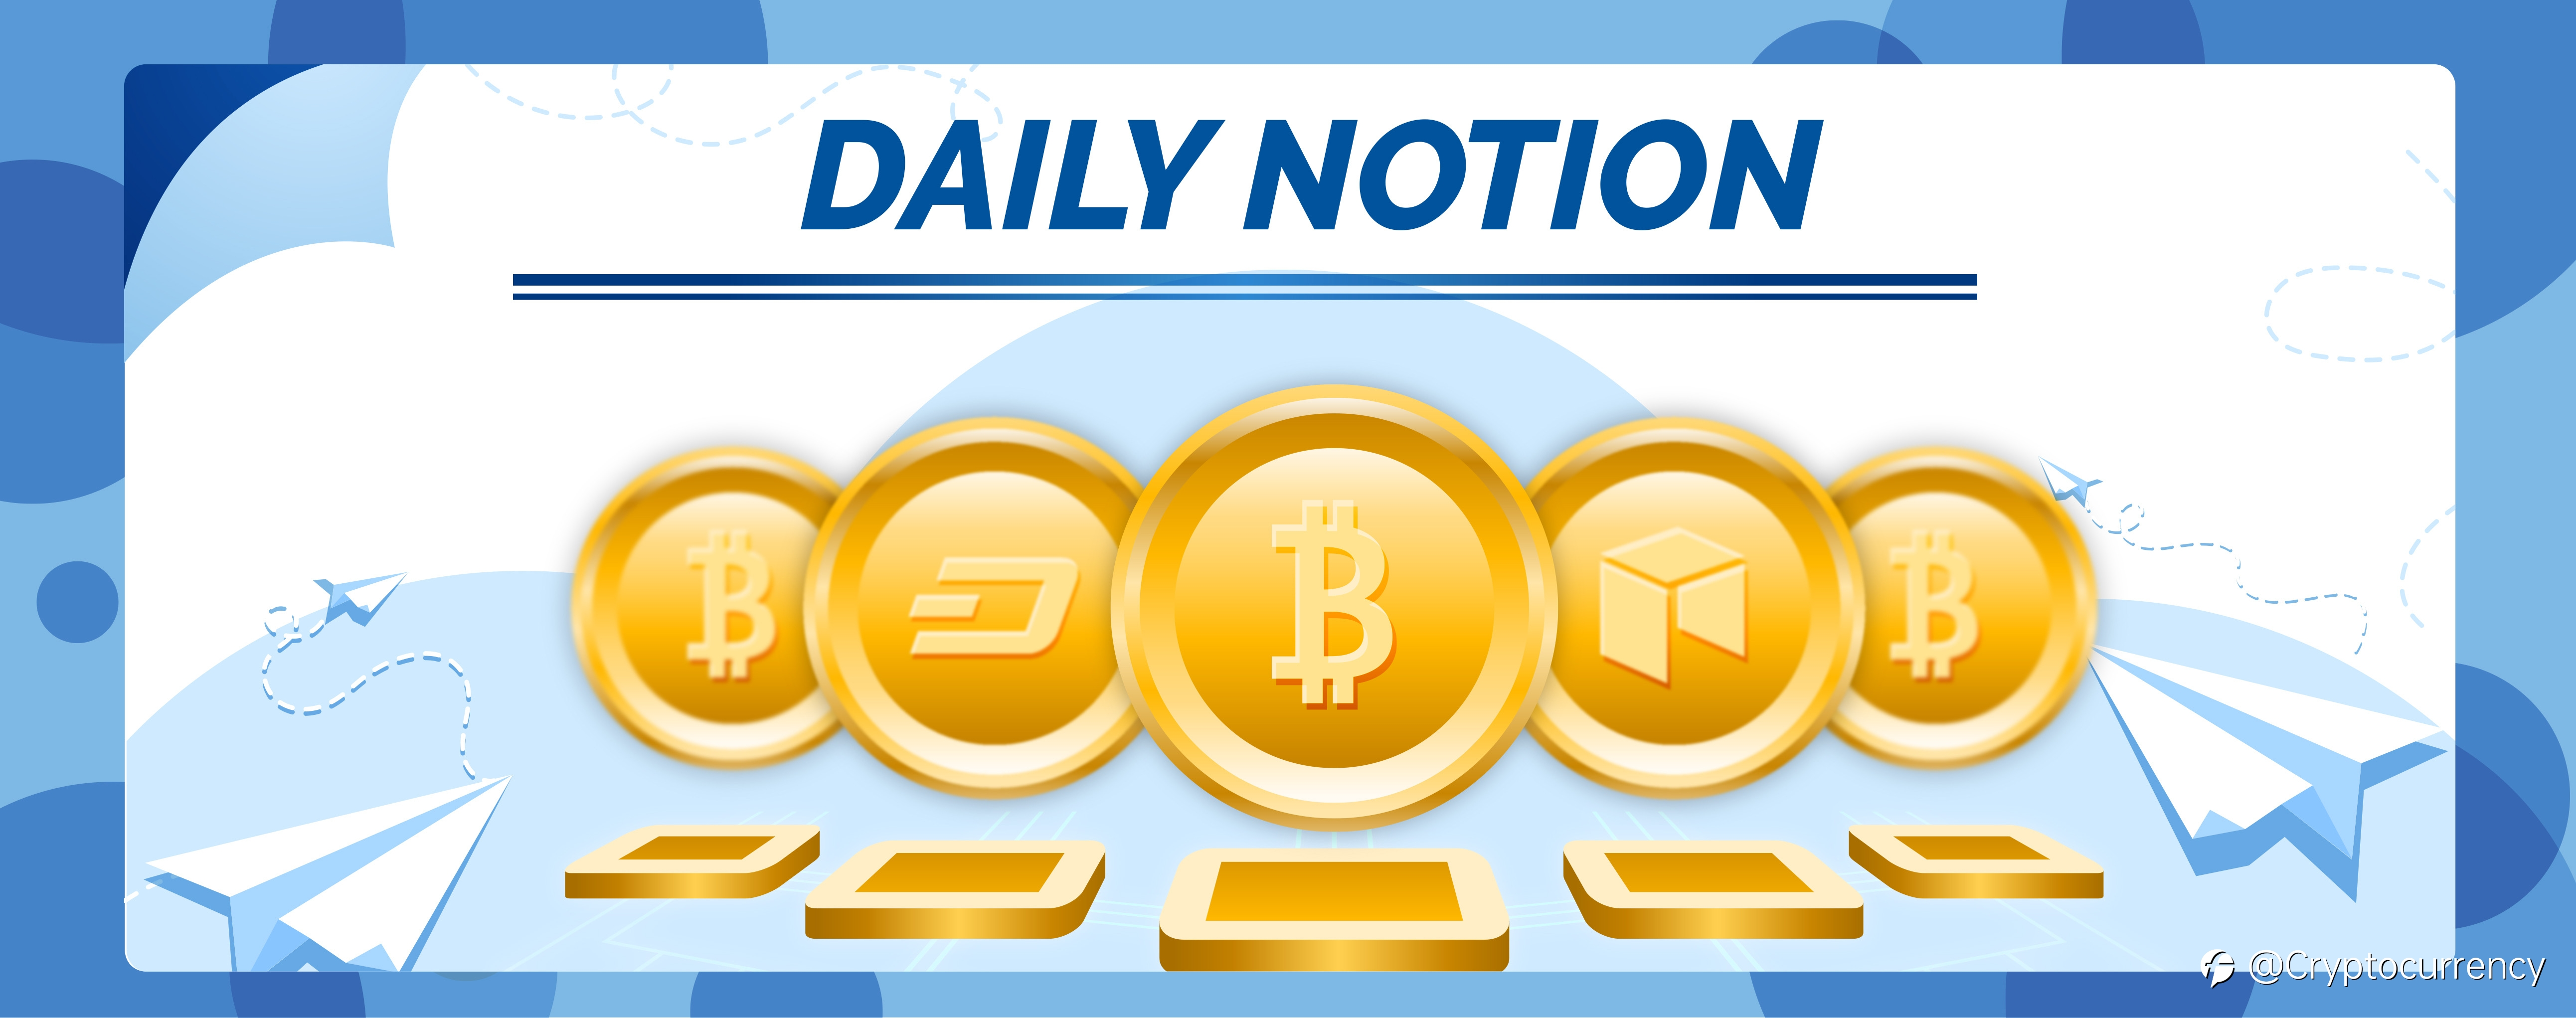 (DAILY NOTION): ETH/USD: The Battle Between the Bulls and Bears Continues, Who Will Be the Champion?